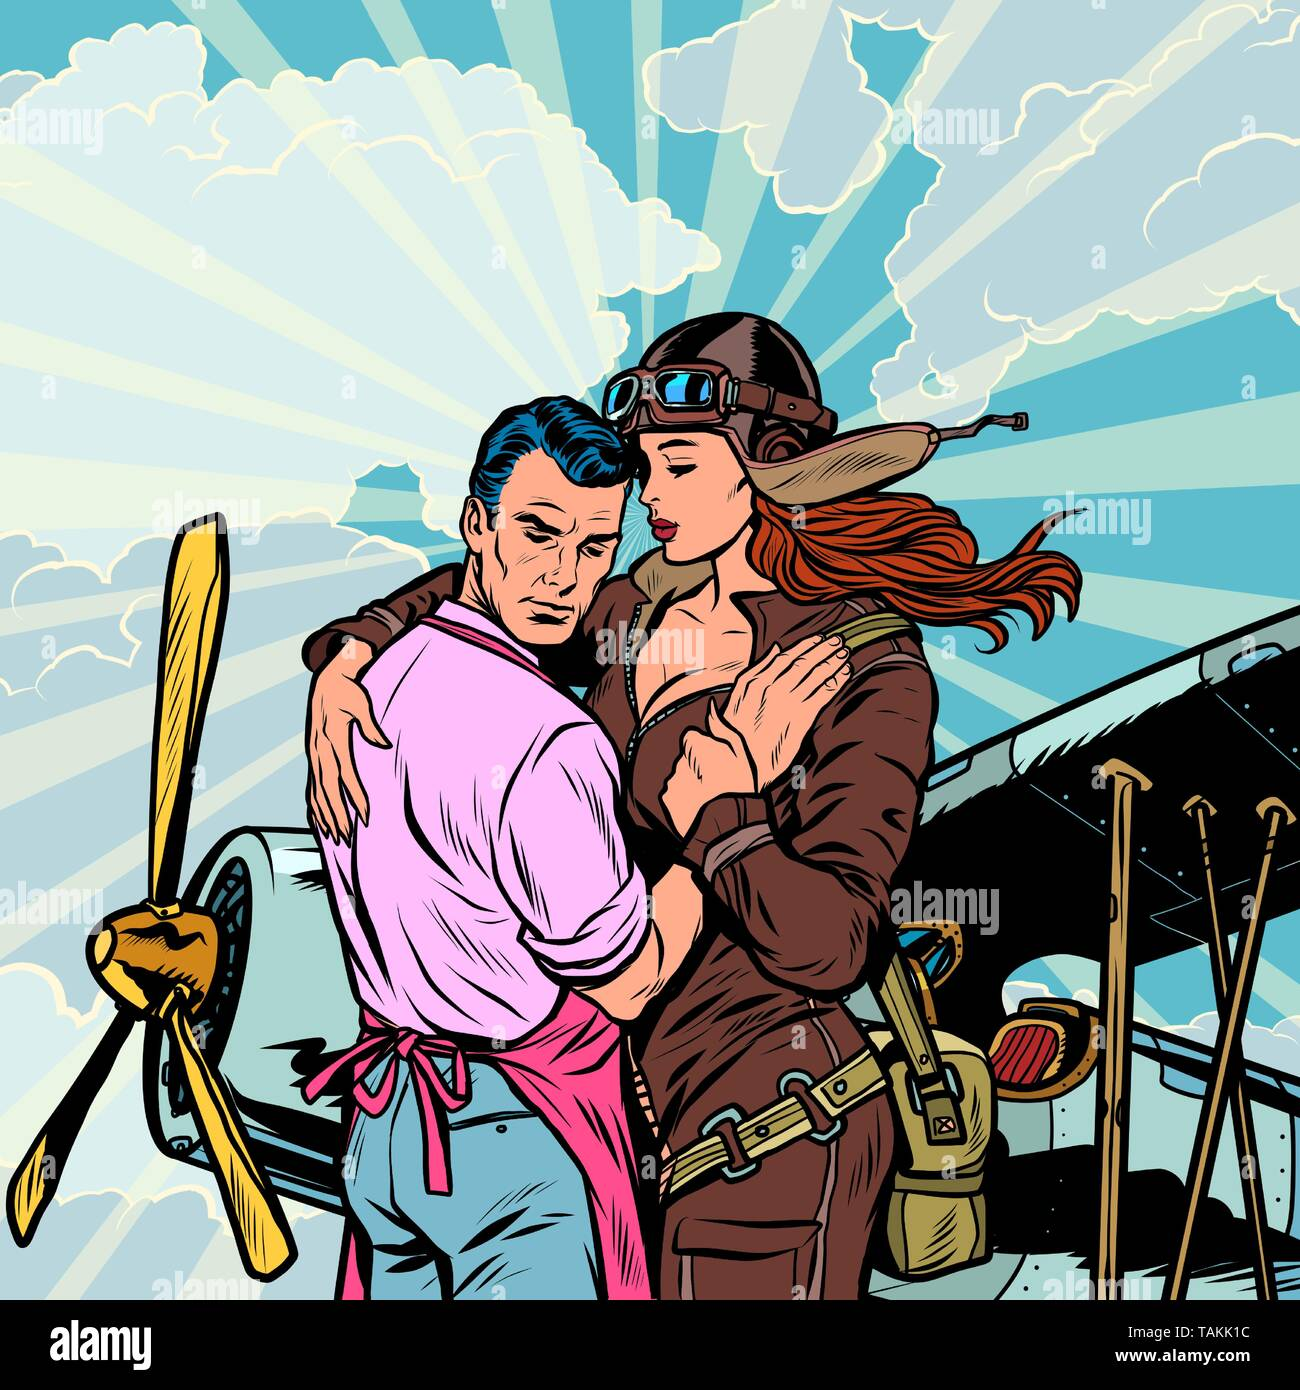 woman pilot says goodbye to a man, a couple in love with a retro plane. Pop art retro vector illustration vintage kitsch - Stock Image